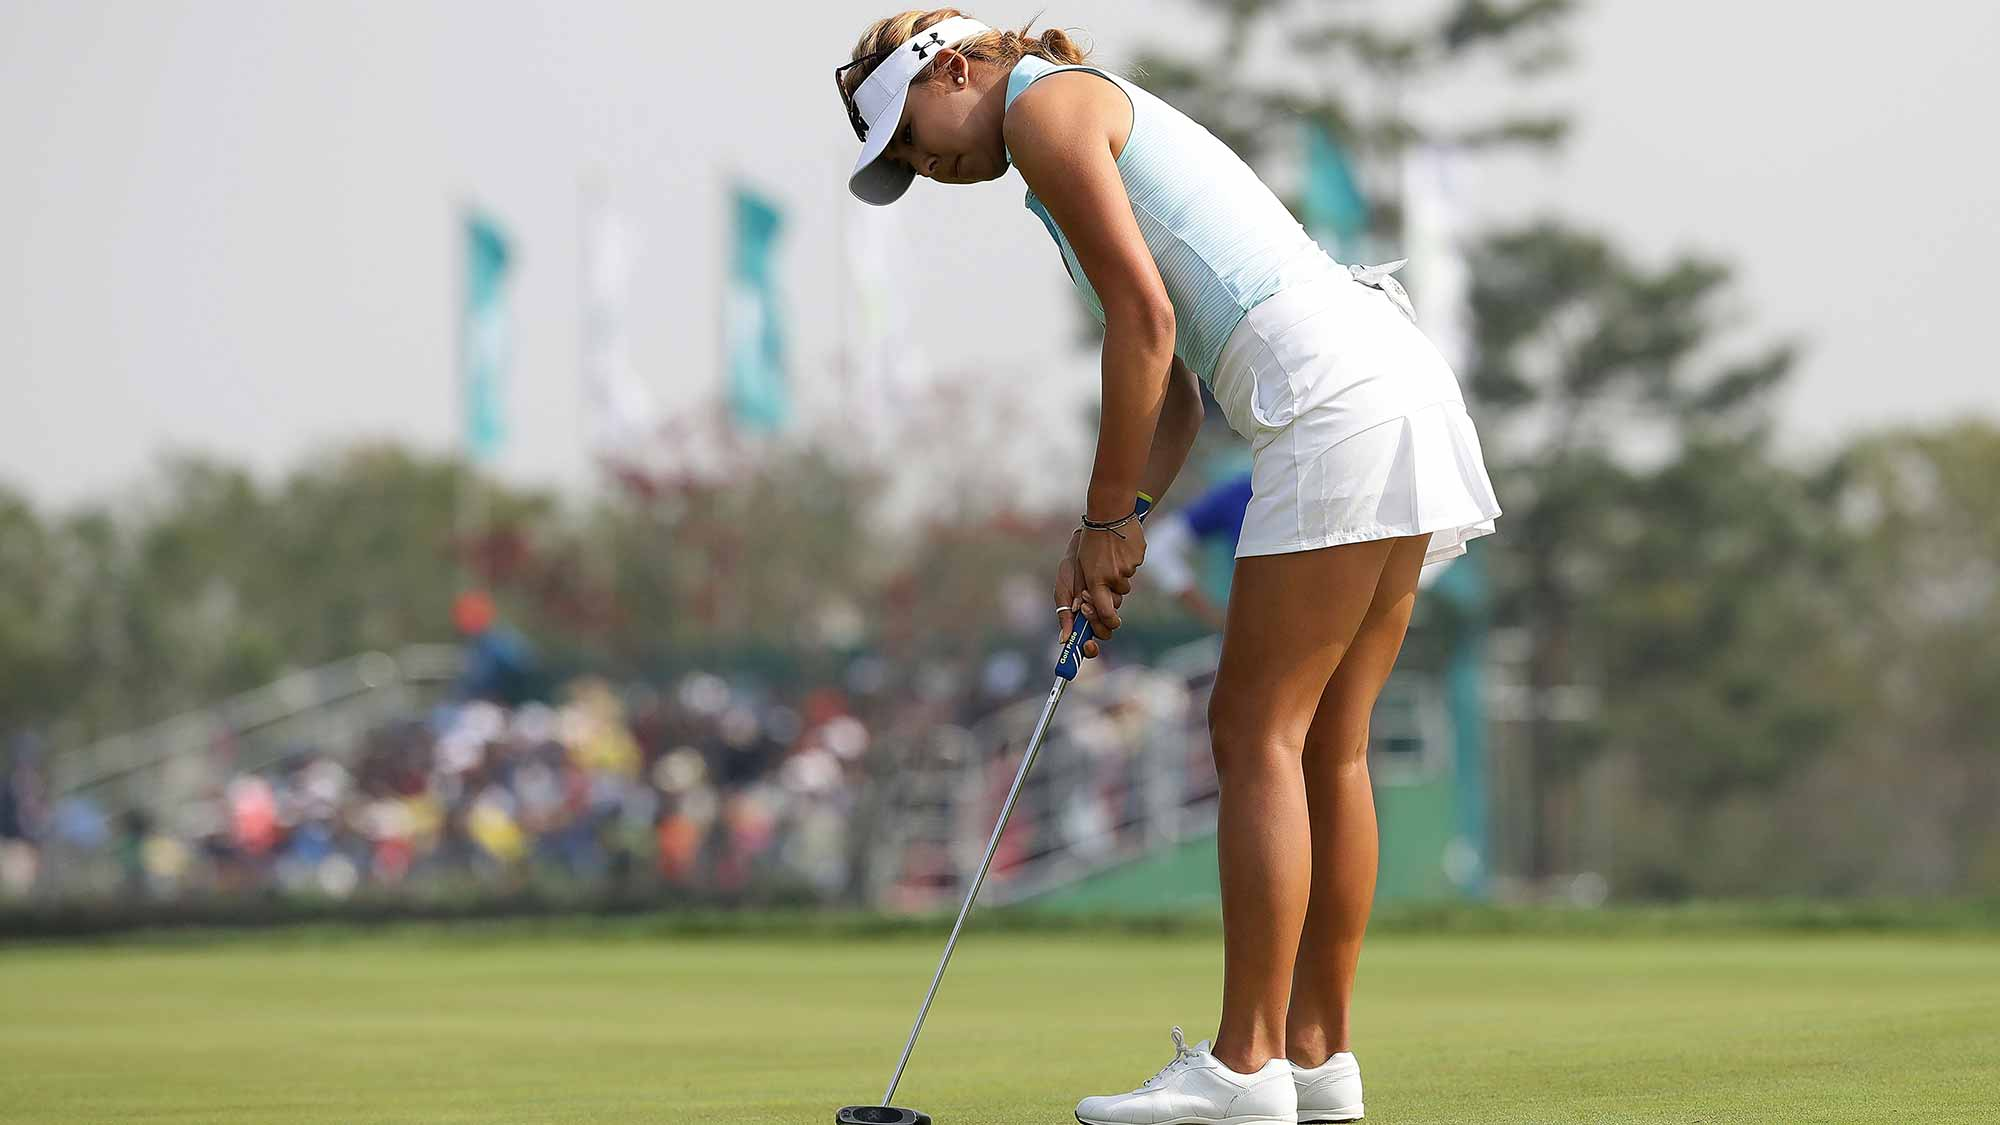 Alison Lee of United States plays a putt on the 9th hole during the third round of the LPGA KEB-Hana Bank Championship at the Sky 72 Golf Club Ocean Course